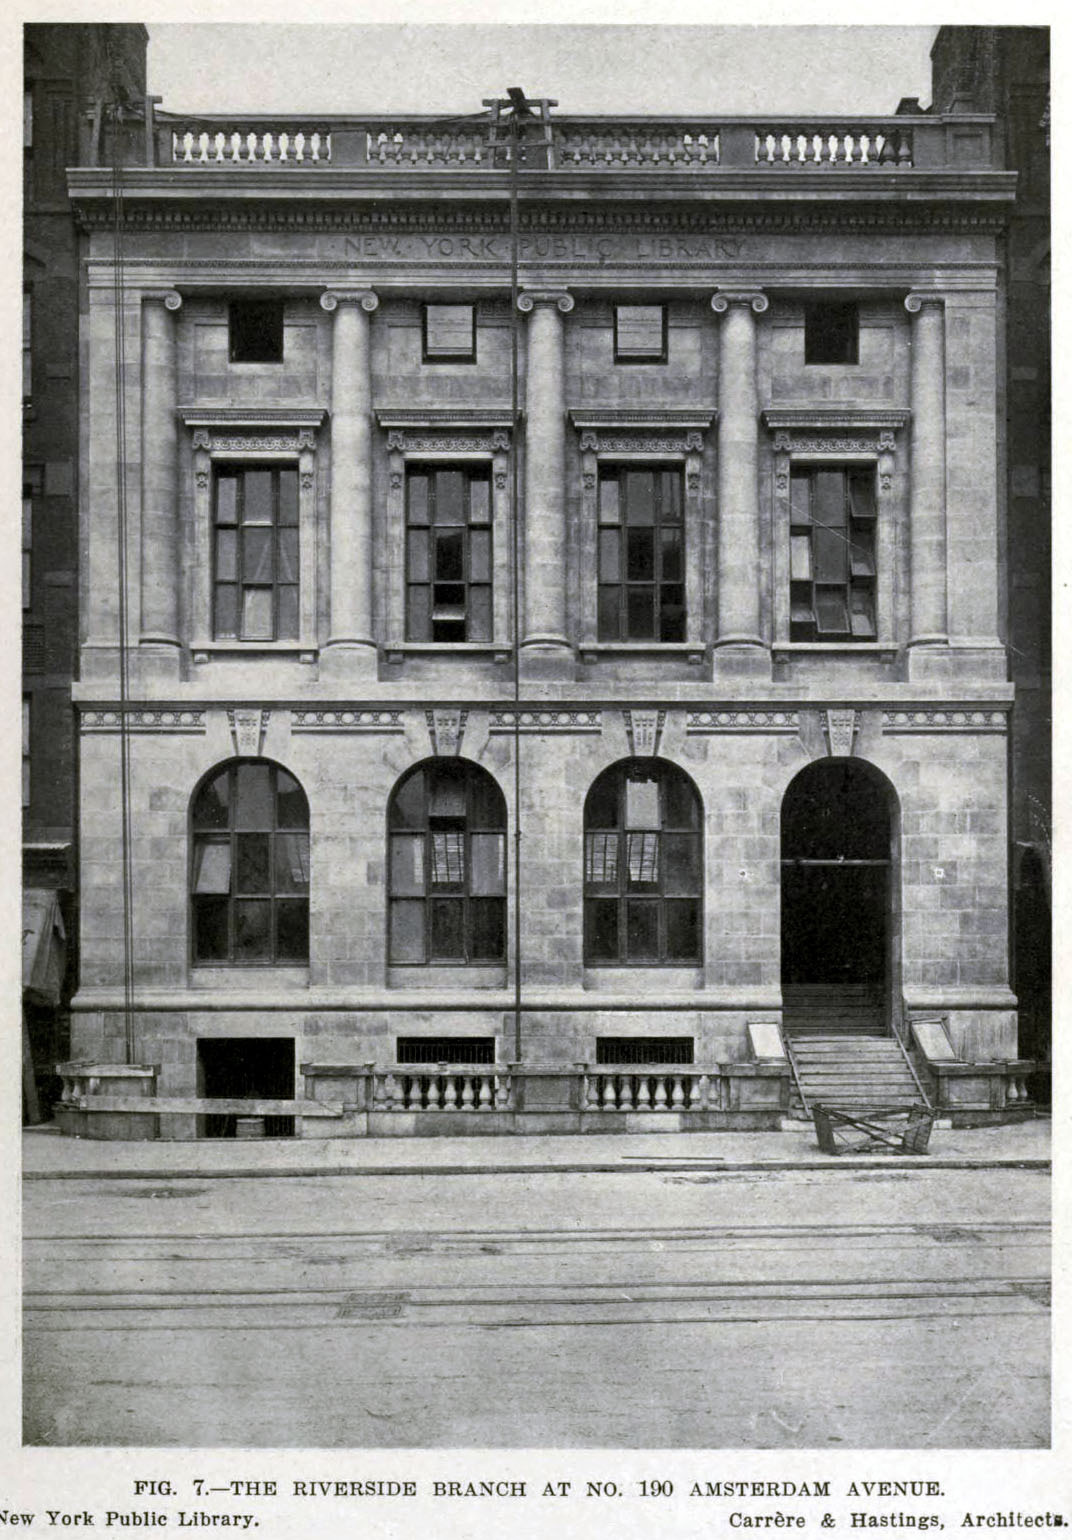 The Riverside Branch of the New York Public Library, New York City